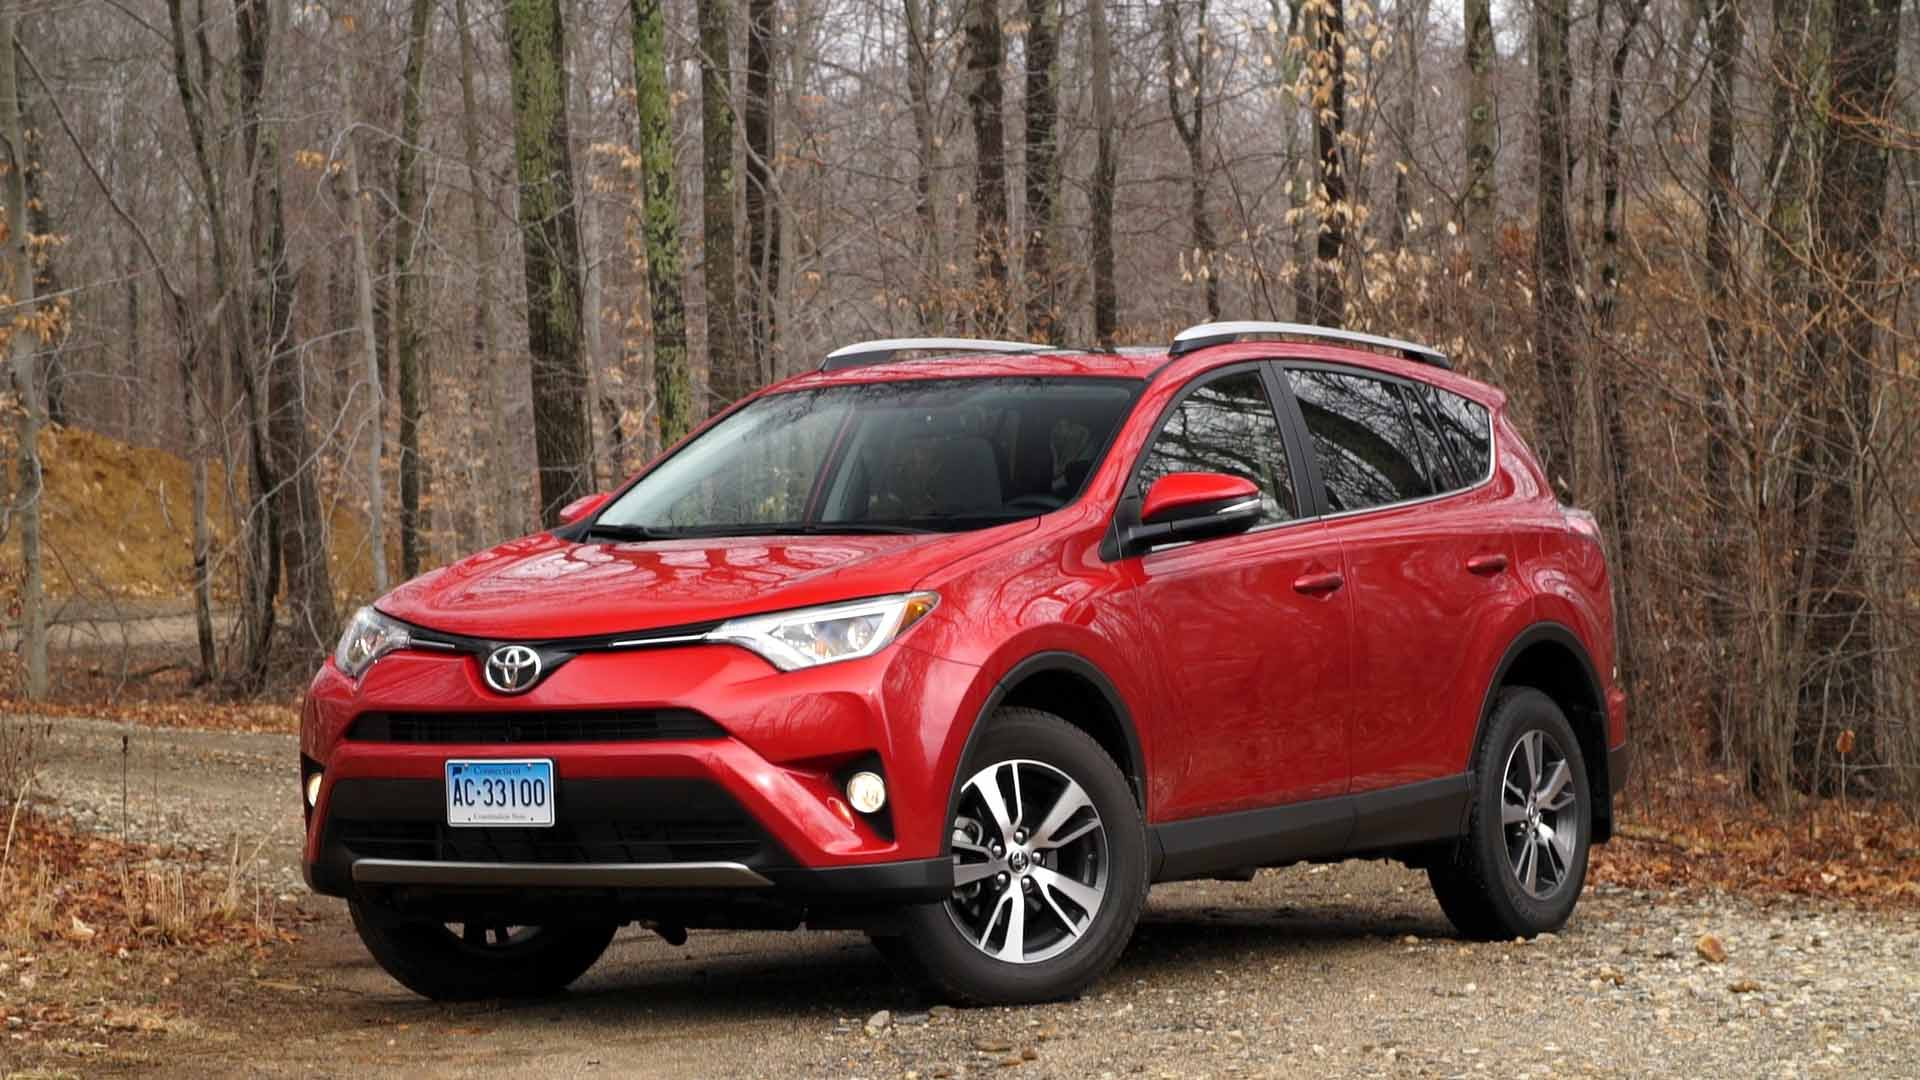 2016 toyota rav4 review consumer reports. Black Bedroom Furniture Sets. Home Design Ideas